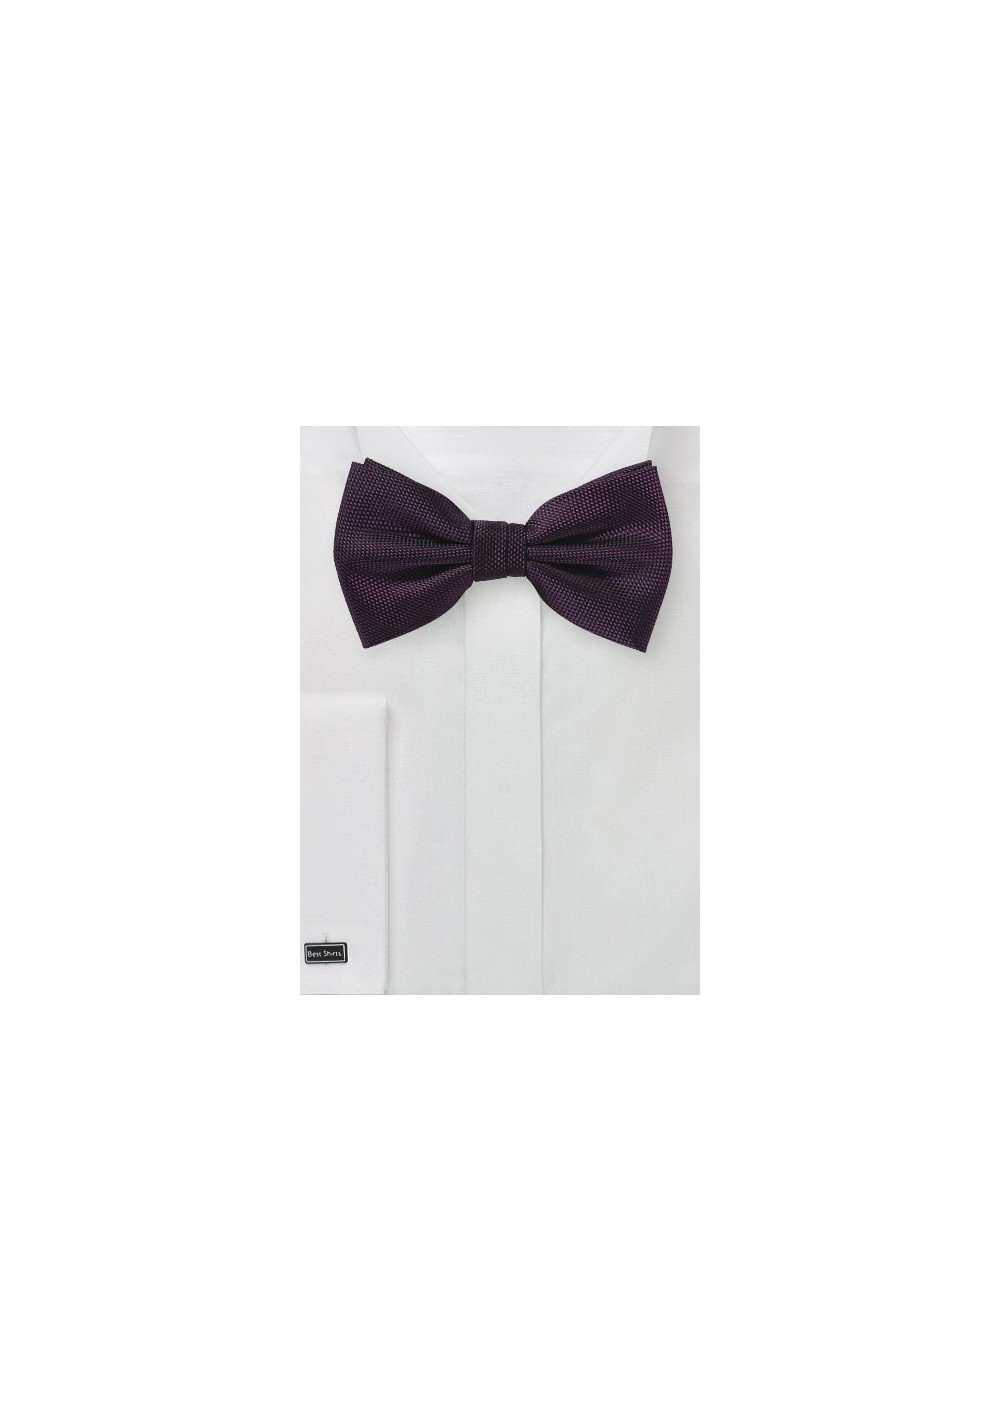 Solid Grape Bowtie in Matte Finish